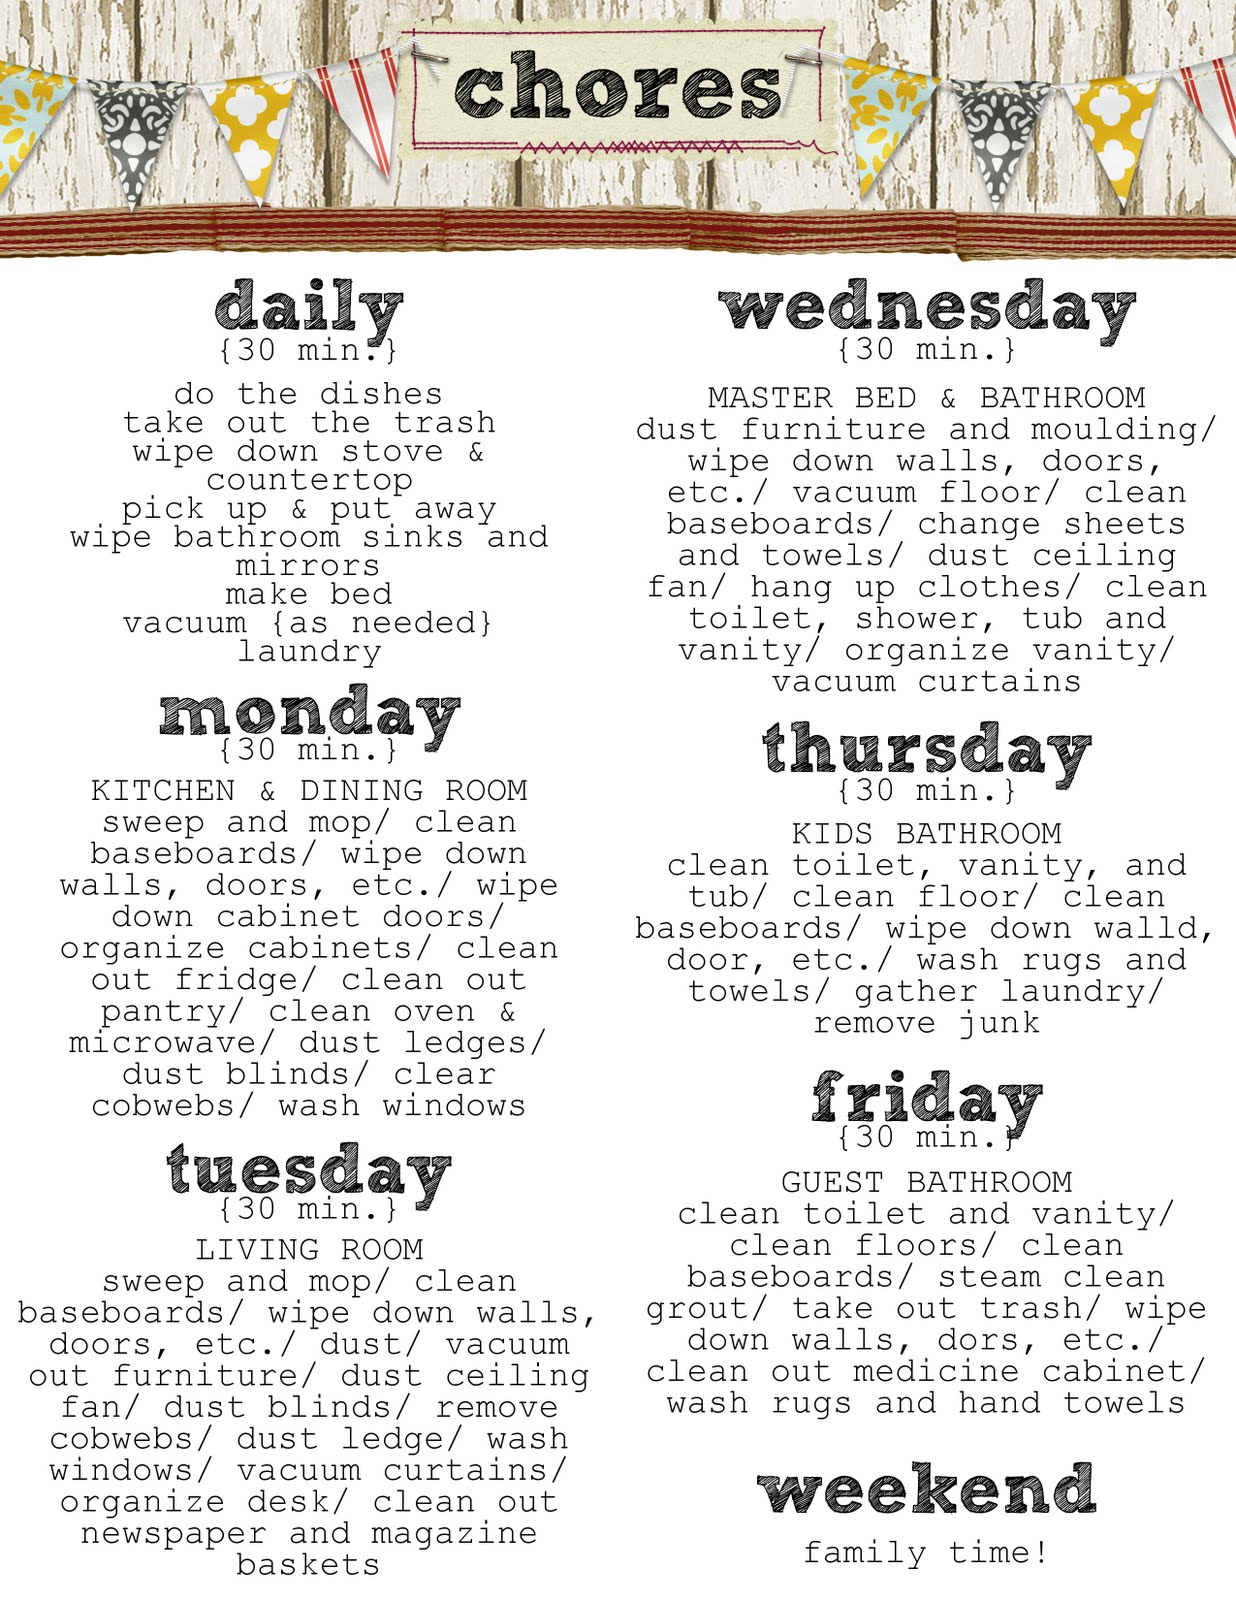 8 Images of Daily Chore Checklist Printable